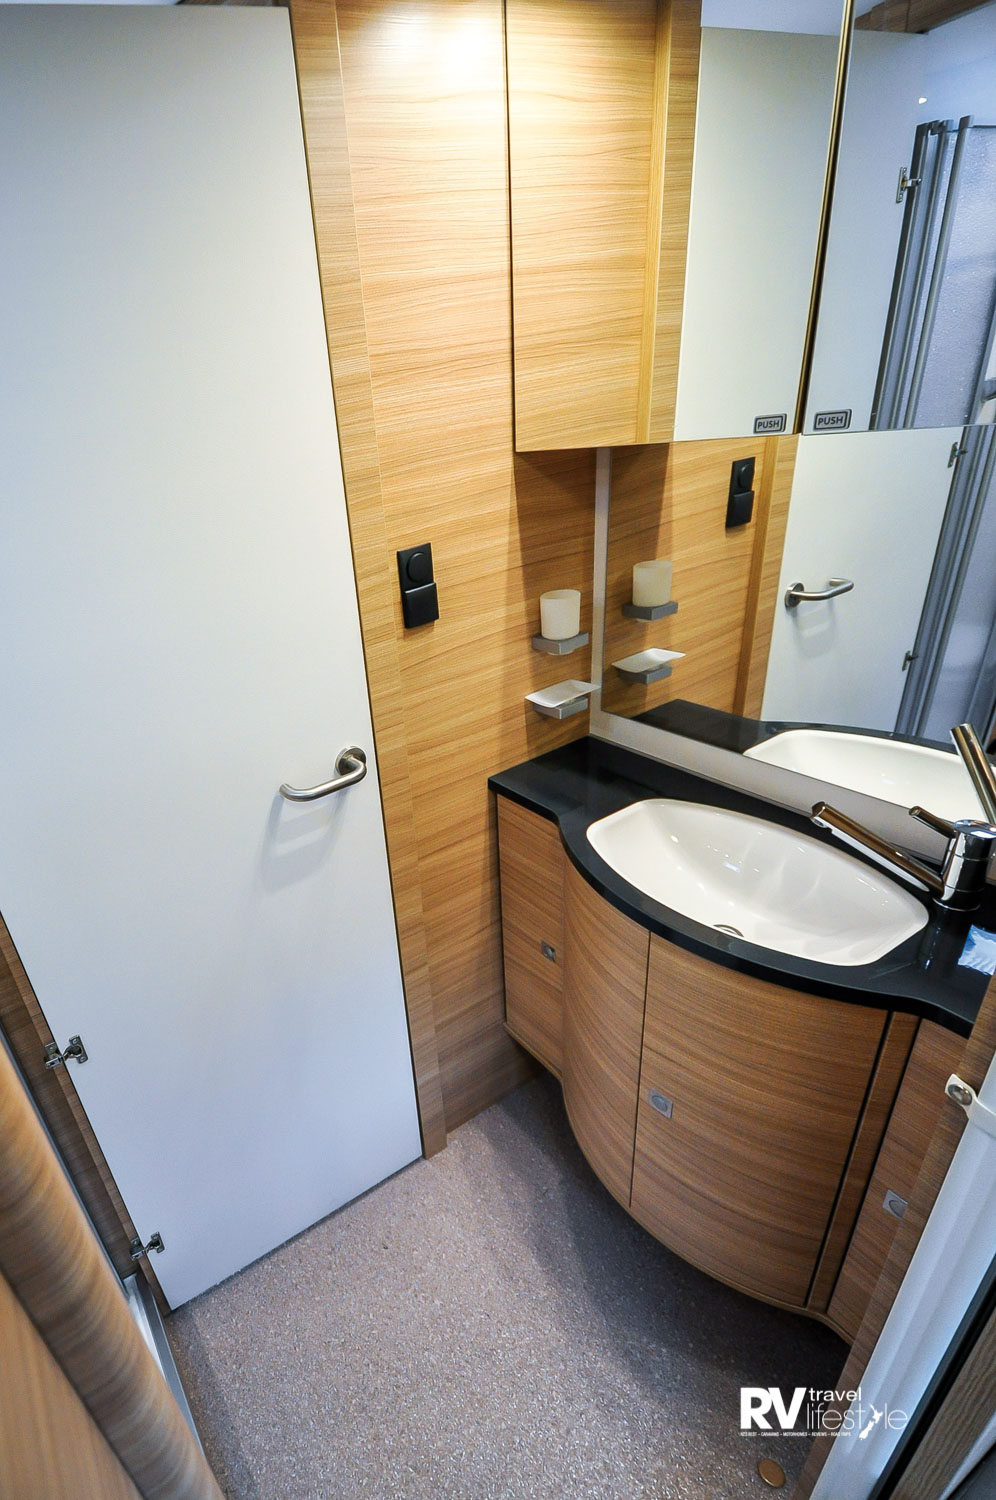 The bathroom with vanity unit, storage below, mirrored wall shelf unit, the shower/toilet is to the near-right of this image. This is on the left side of the vehicle looking to the rear, opposite the shower/toilet door